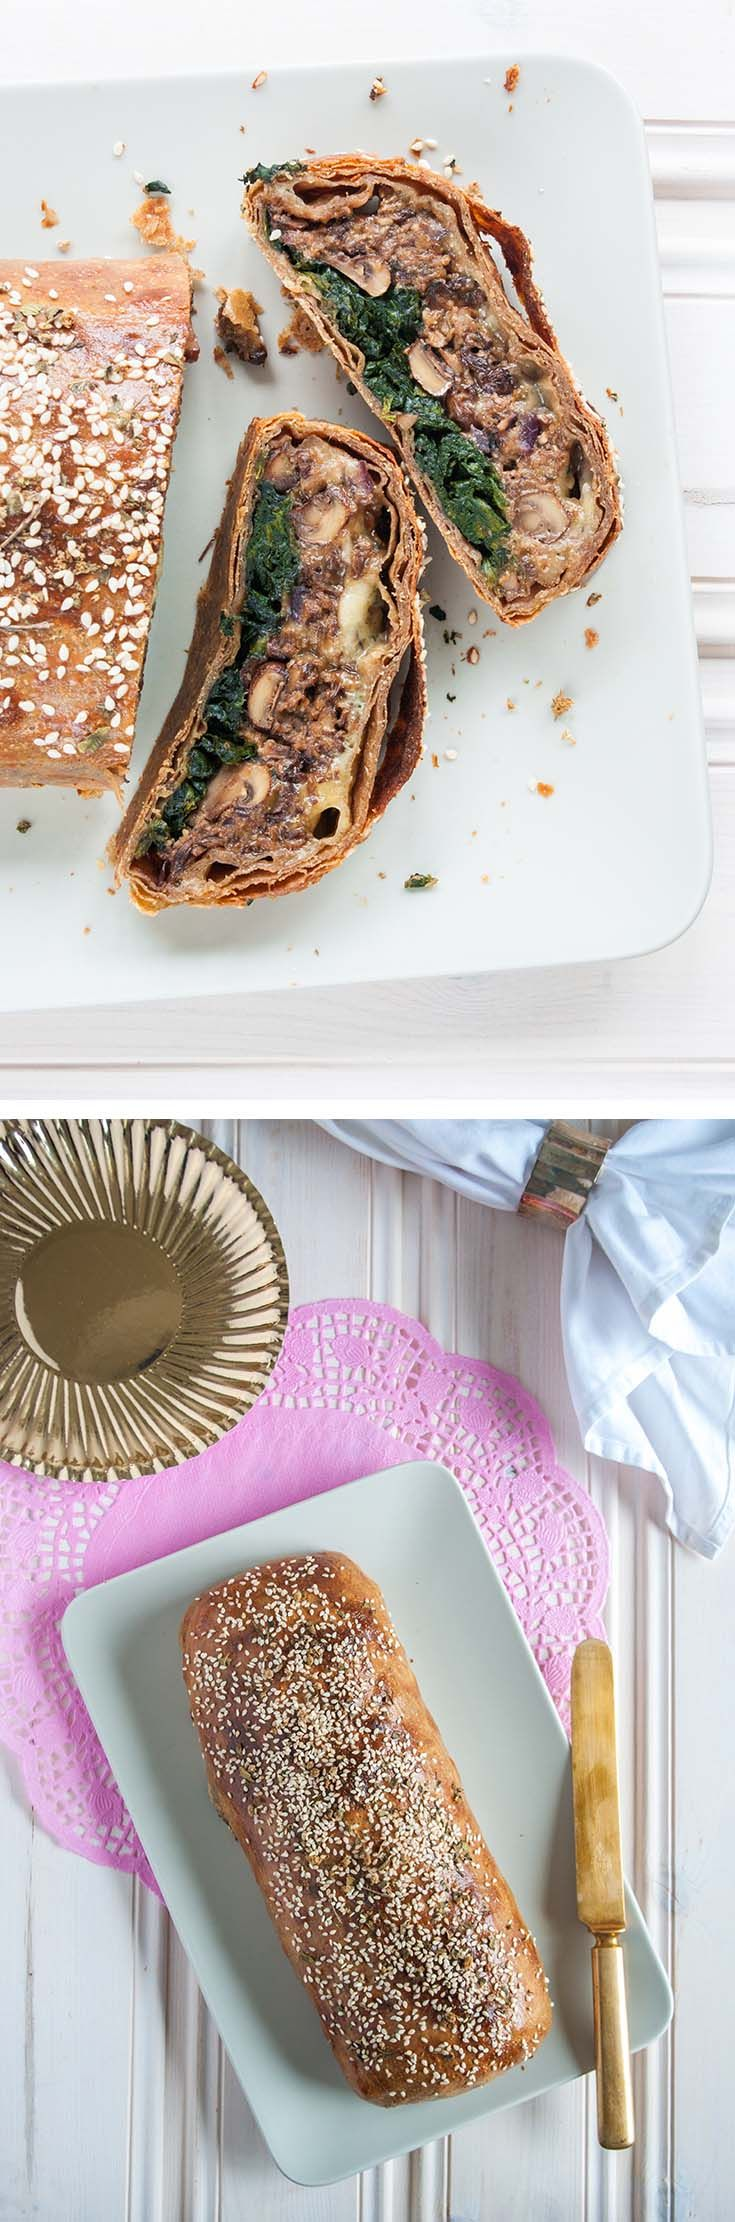 Mushroom Wellington – garlic mushrooms, seasoned spinach and melted blue cheese, wrapped in thin, flaky layers of spelt pastry. This vegetarian Christmas centrepiece can be made ahead for an easy time on the day.